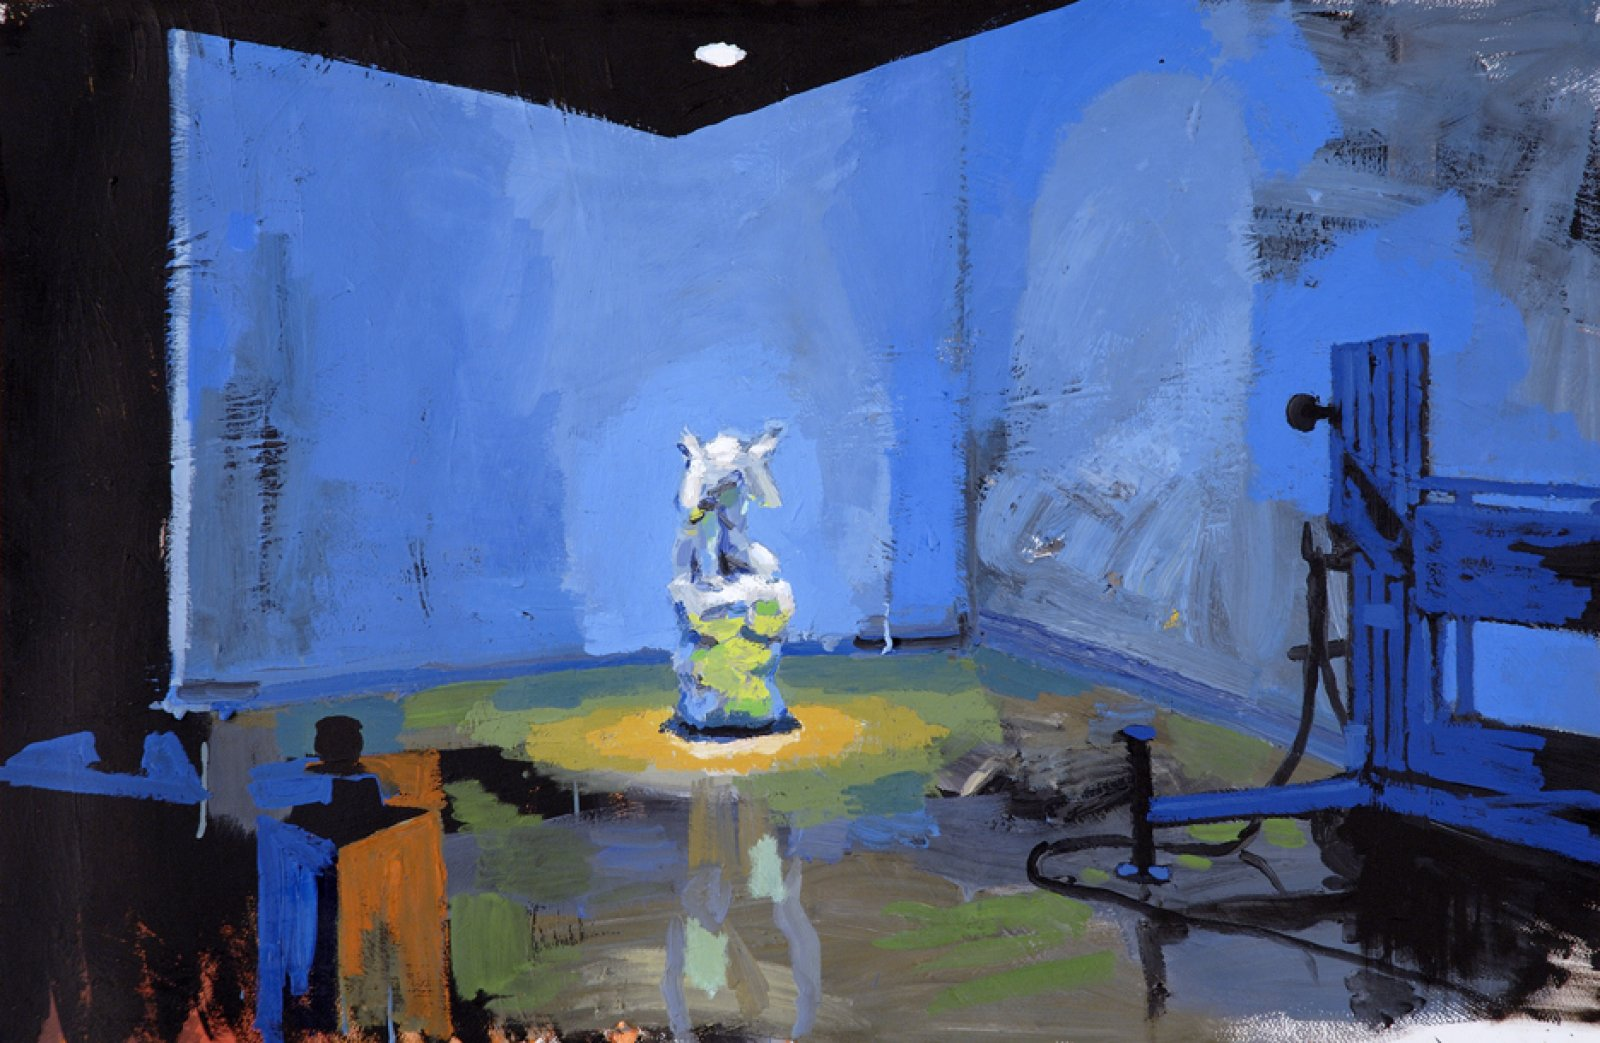 Damian Moppett, Caryatid at Carleton, 2006, oil on paper, 28 x 40 in. (71 x 102 cm) by Damian Moppett